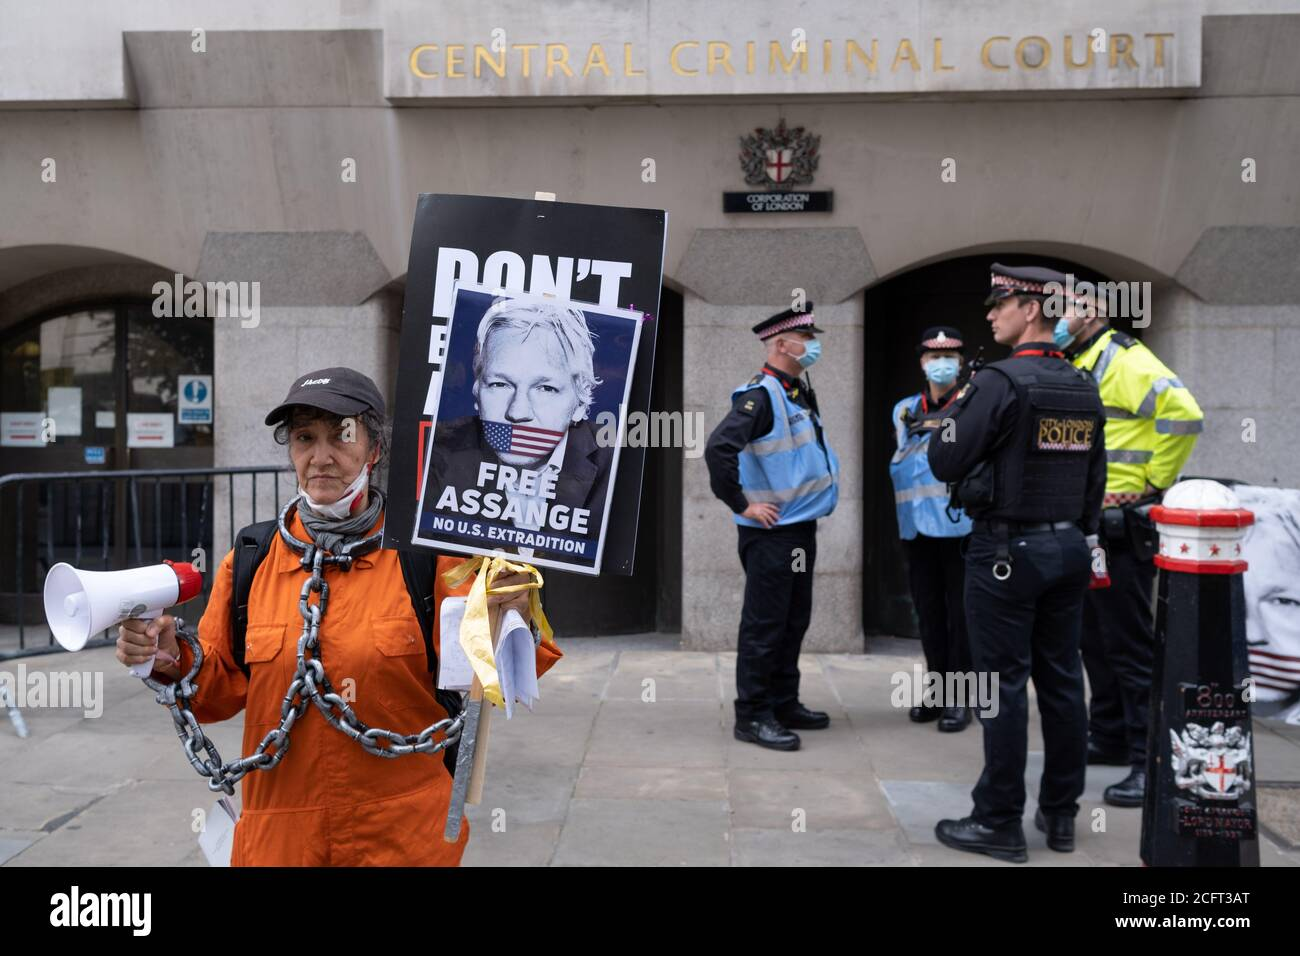 Supporters of Wikileaks founder Julian Assange protest outside London's Old Bailey court as his fight against extradition to the US has resumed, on 7th September 2020, in London, England. Assange has been in Belmarsh Prison for 16 months and is wanted over the publication of classified documents in 2010 and 2011. If convicted in the US, he faces a possible penalty of 175 years in jail. Stock Photo